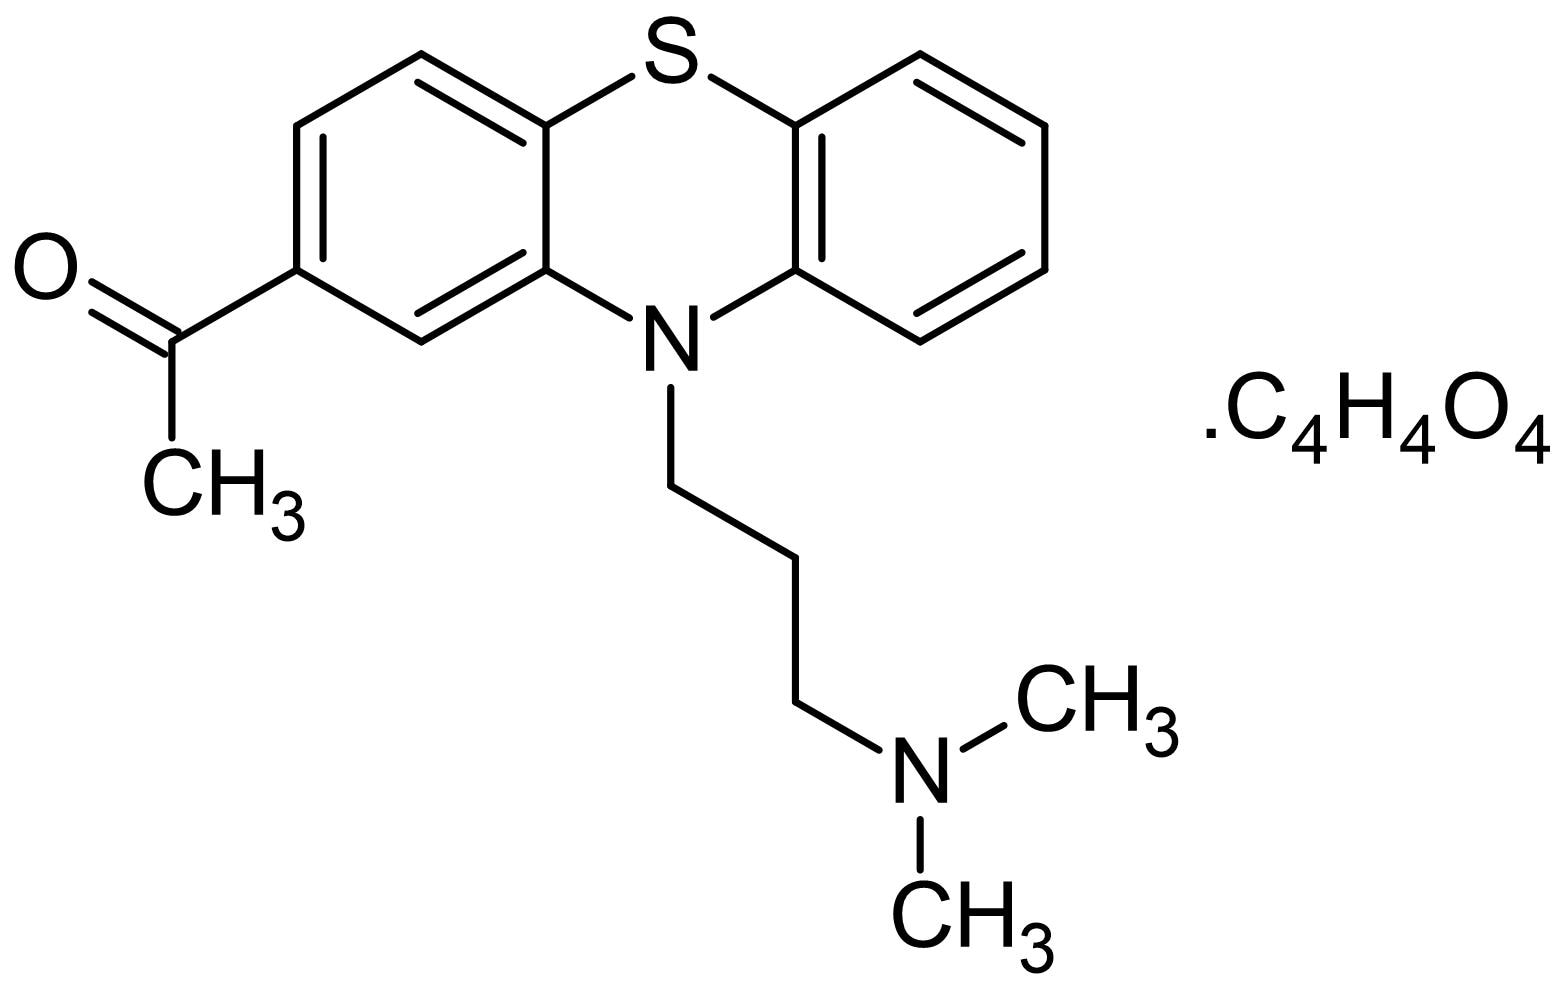 Chemical Structure - Acepromazine maleate, dopamine, 5-HT1 and 5-HT2 receptor antagonist (ab145170)